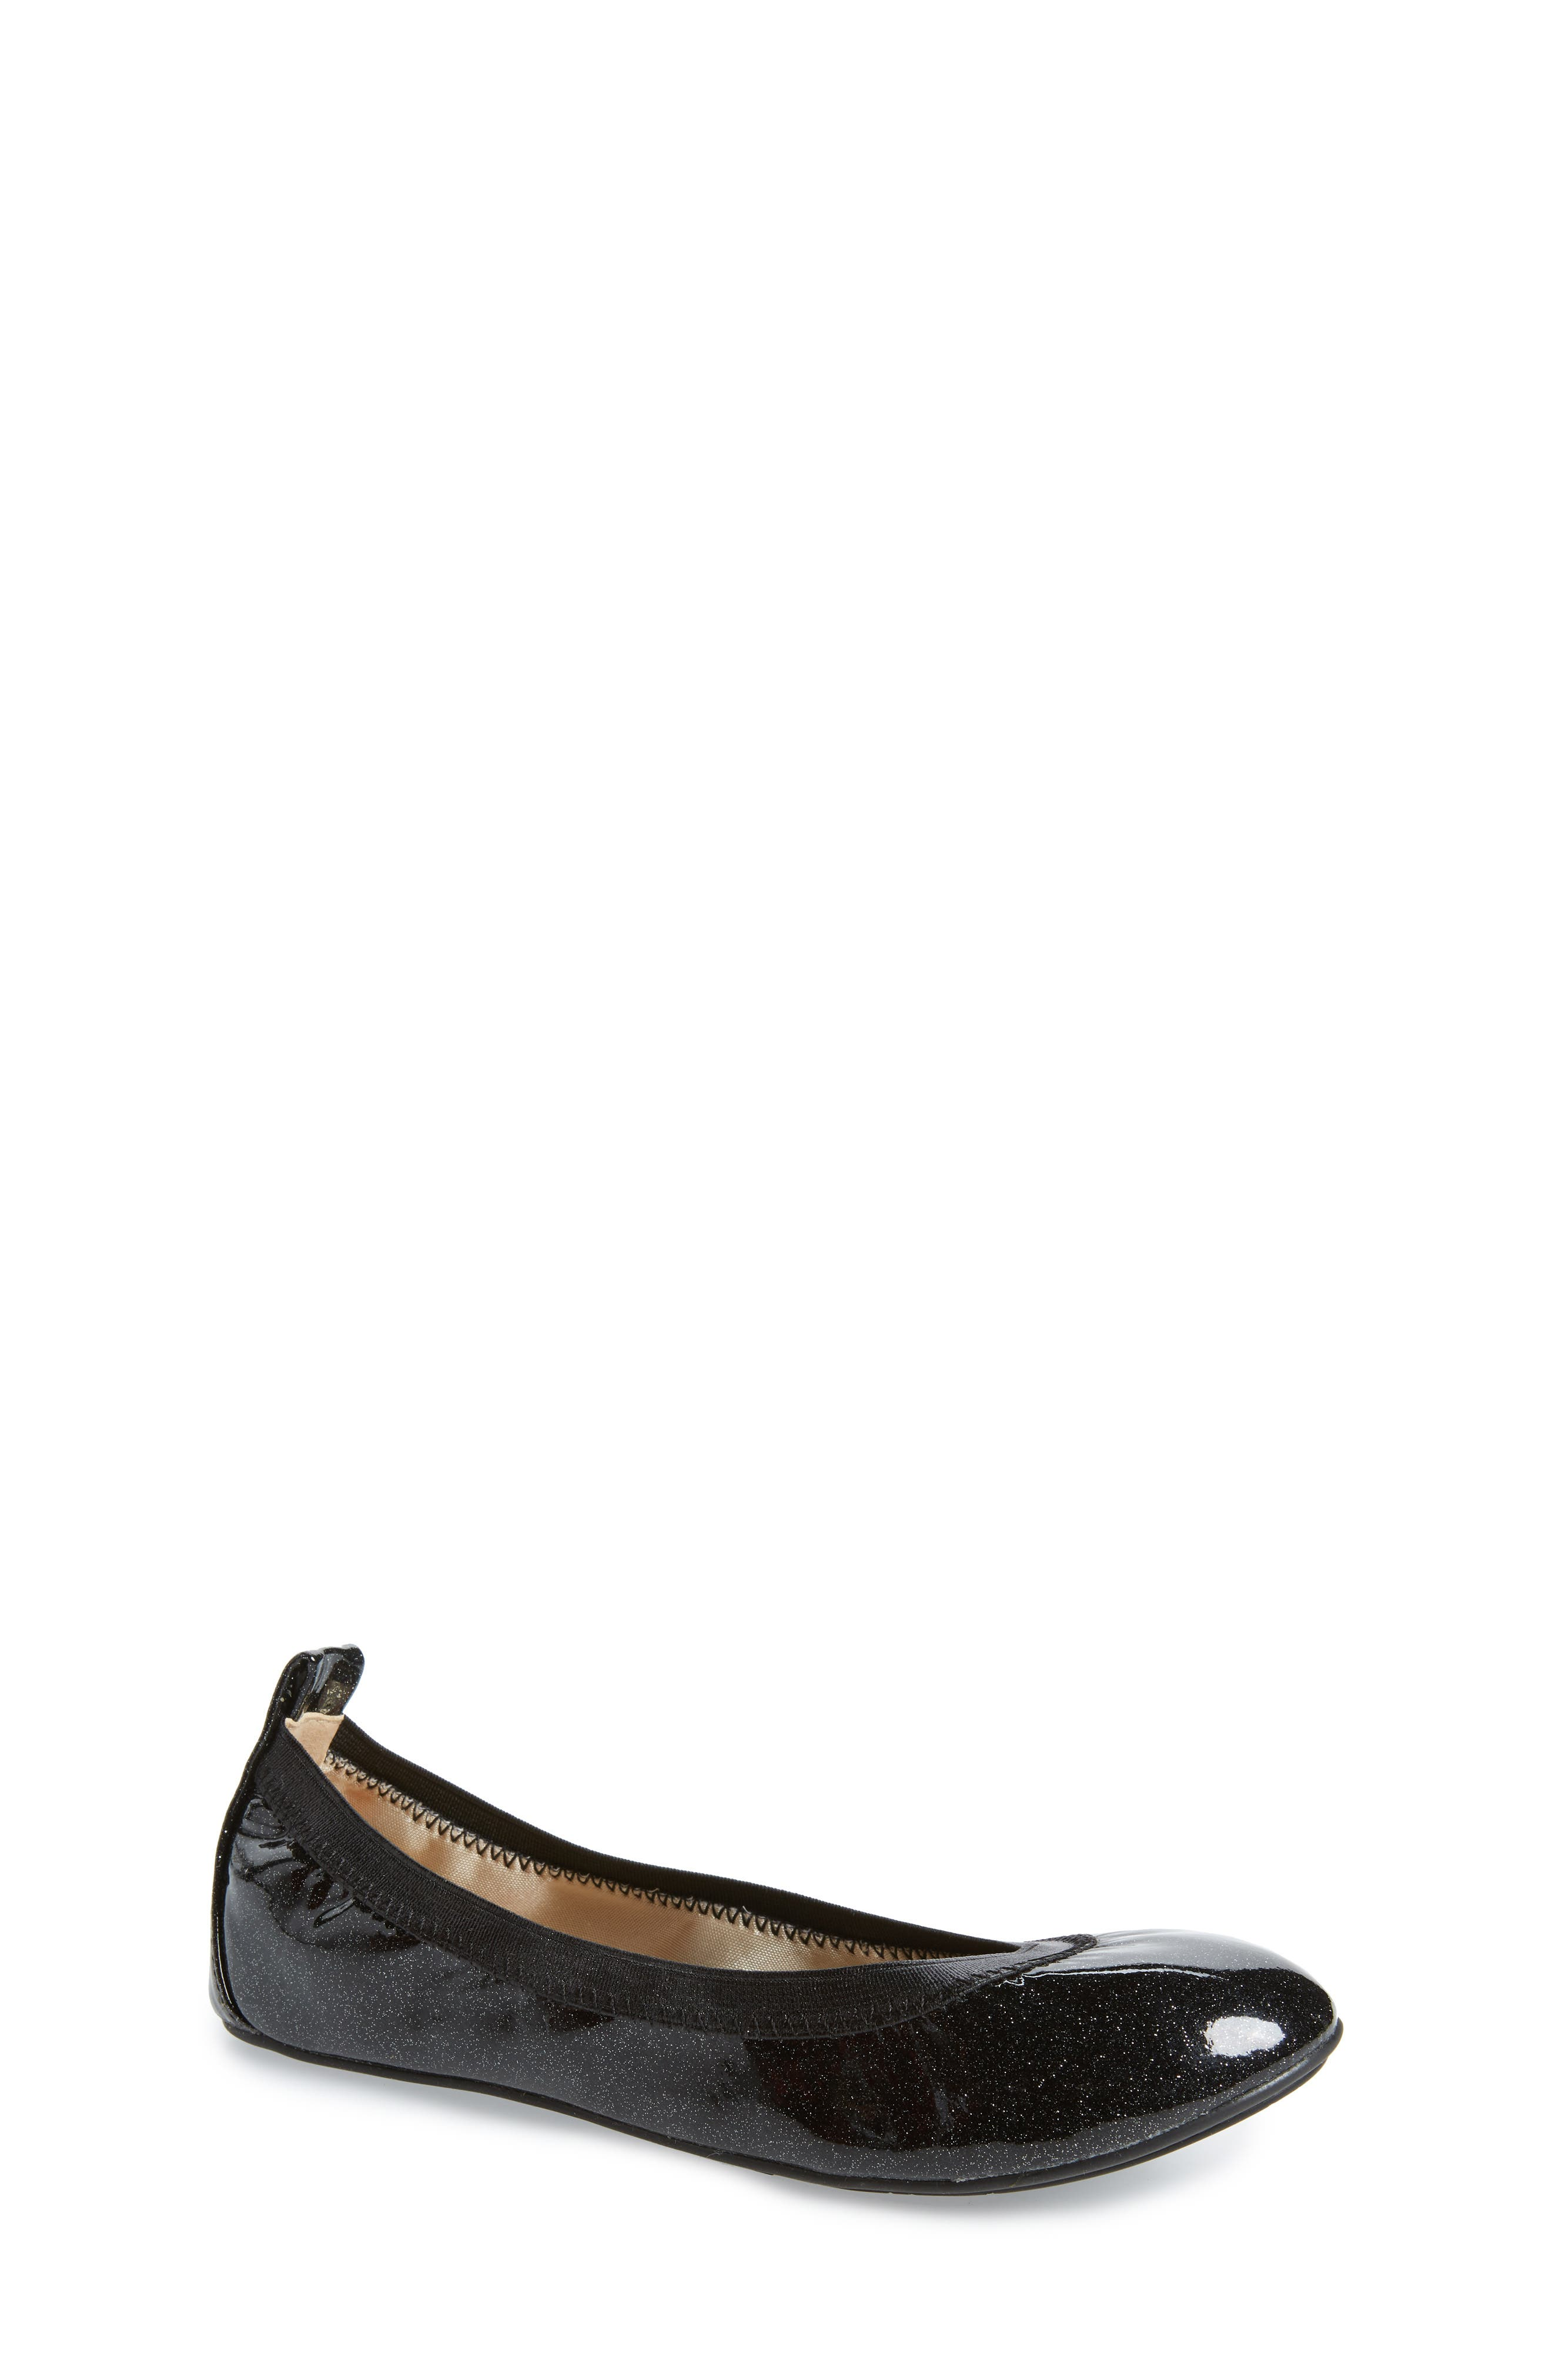 Miss Samara Ballet Flat,                             Main thumbnail 1, color,                             BLACK PATENT GLITTER